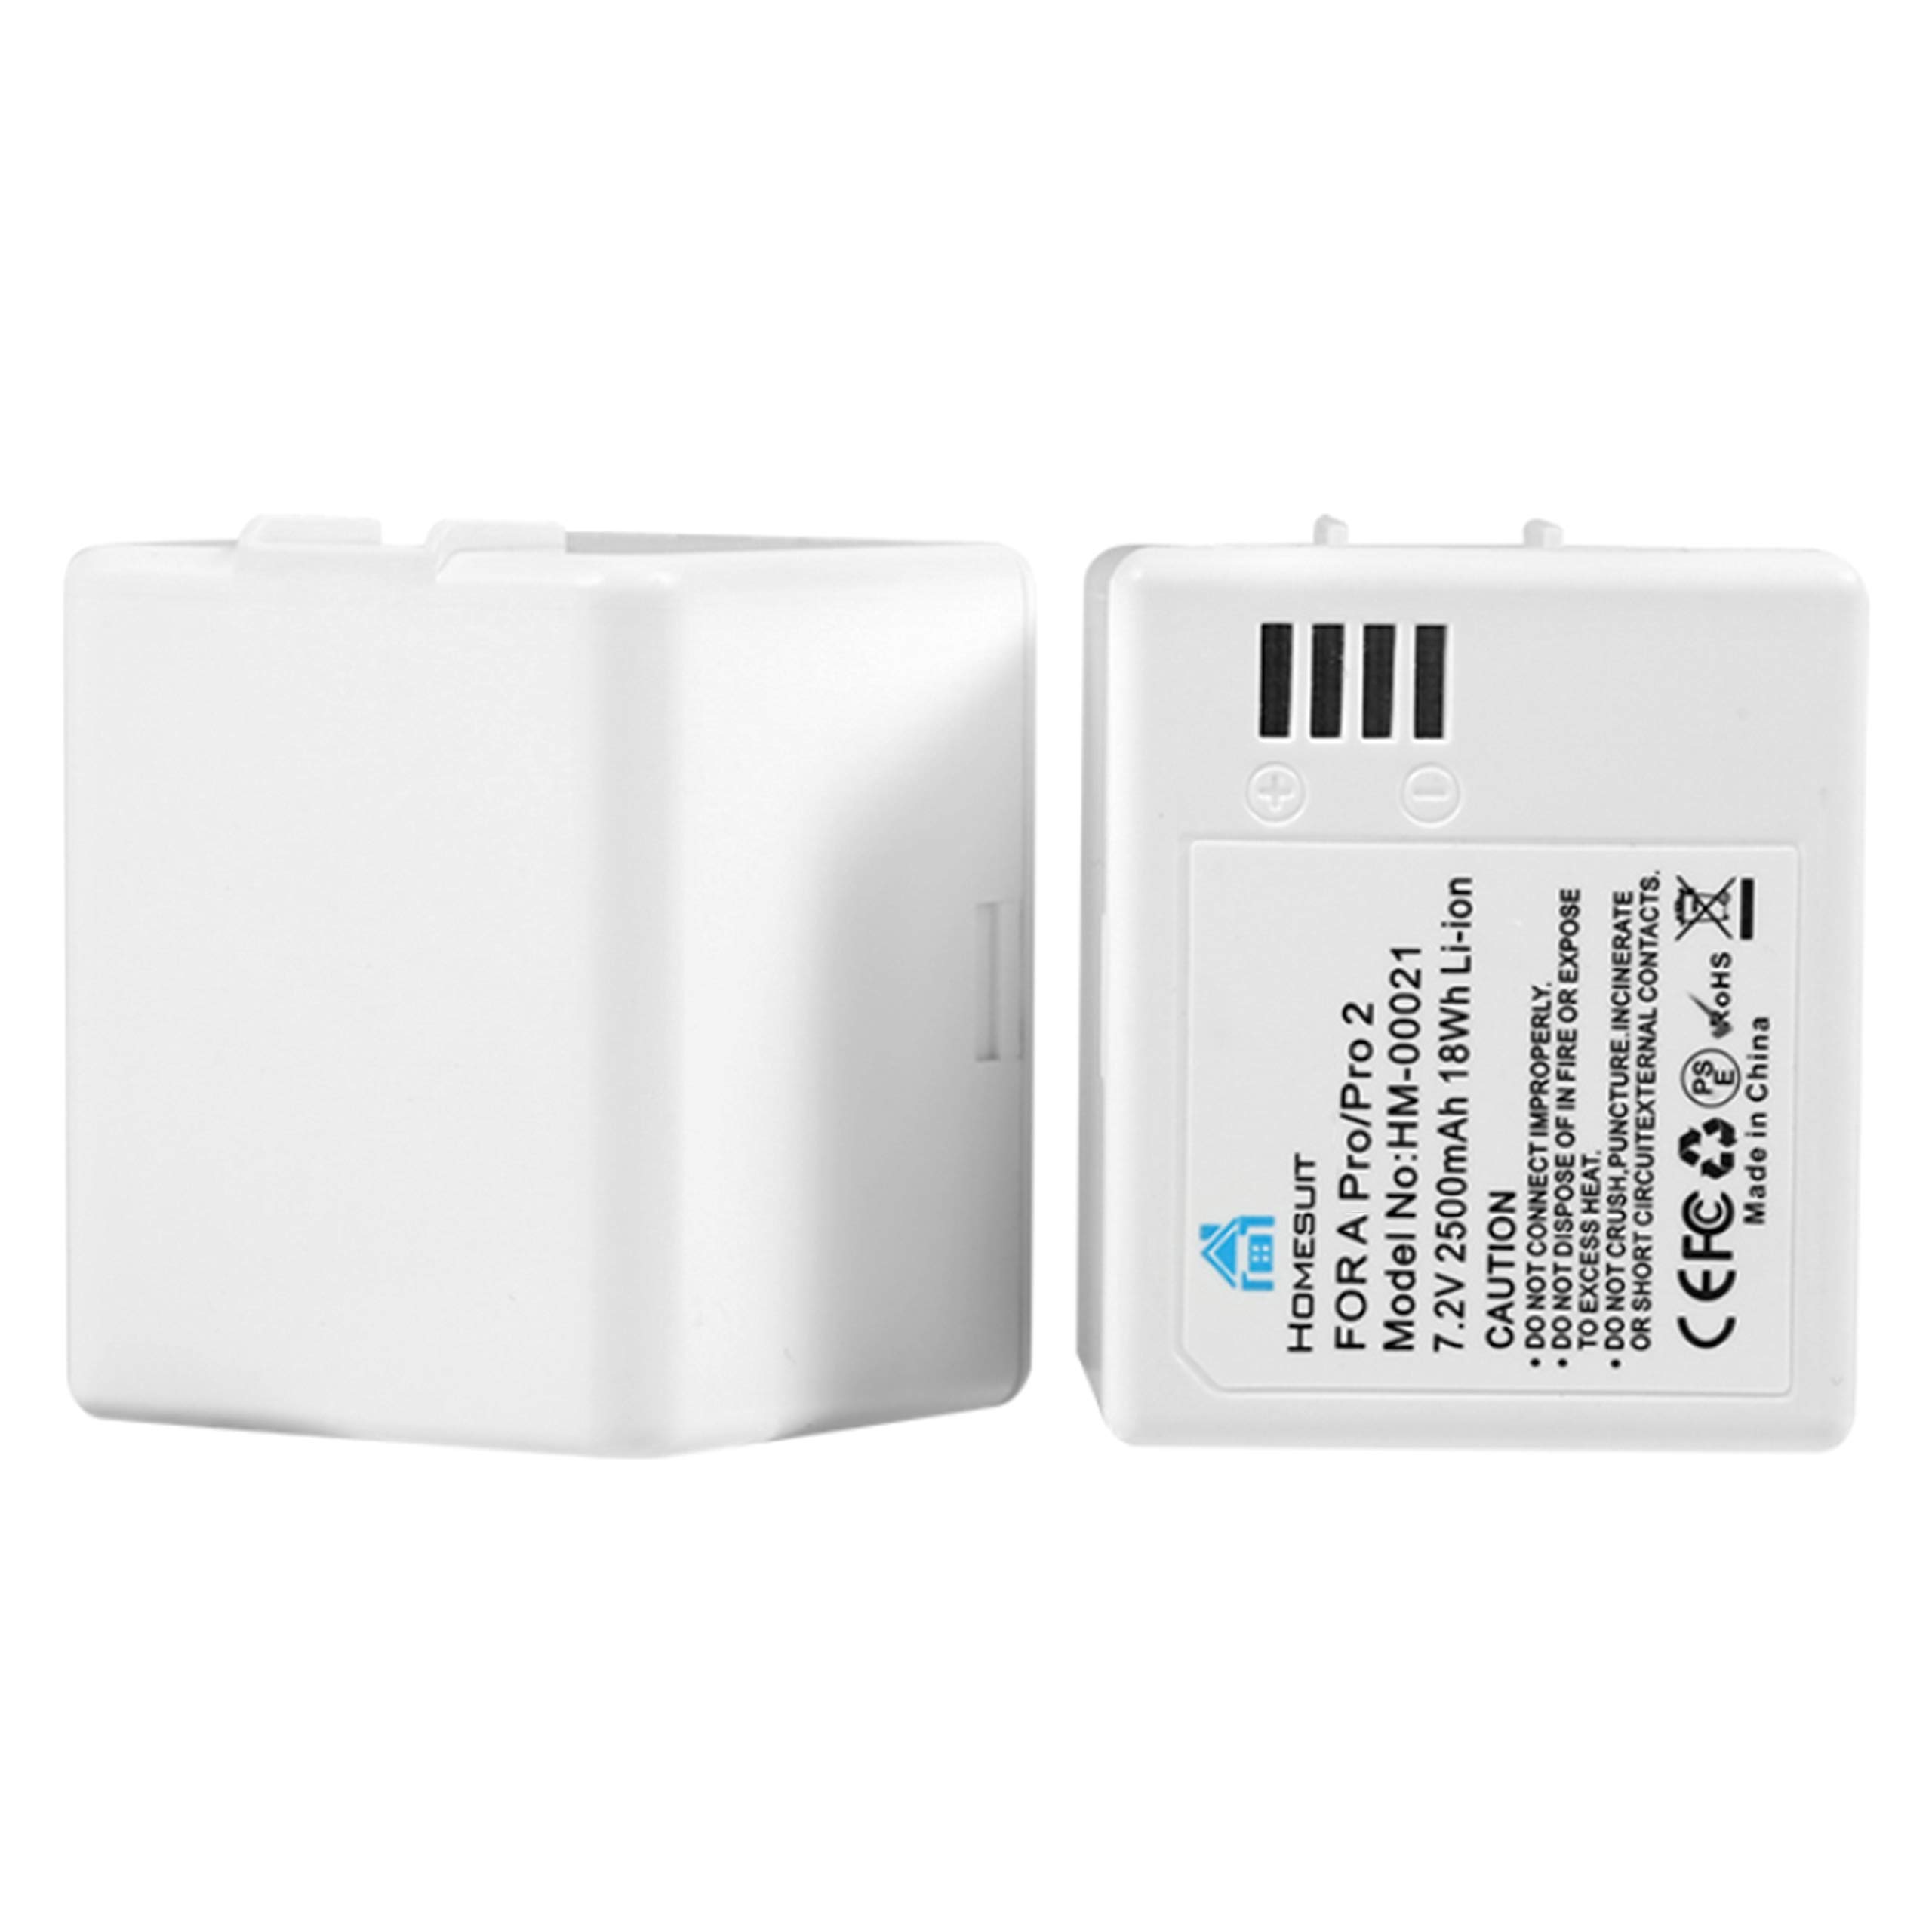 Fireproof Material Adapter with 1.2M Long Cable MP2615GQ MPS Chip Arlo Go Compatible with Arlo Pro Arlo Batteries Charger Station Arlo Security Light Arlo Pro 2